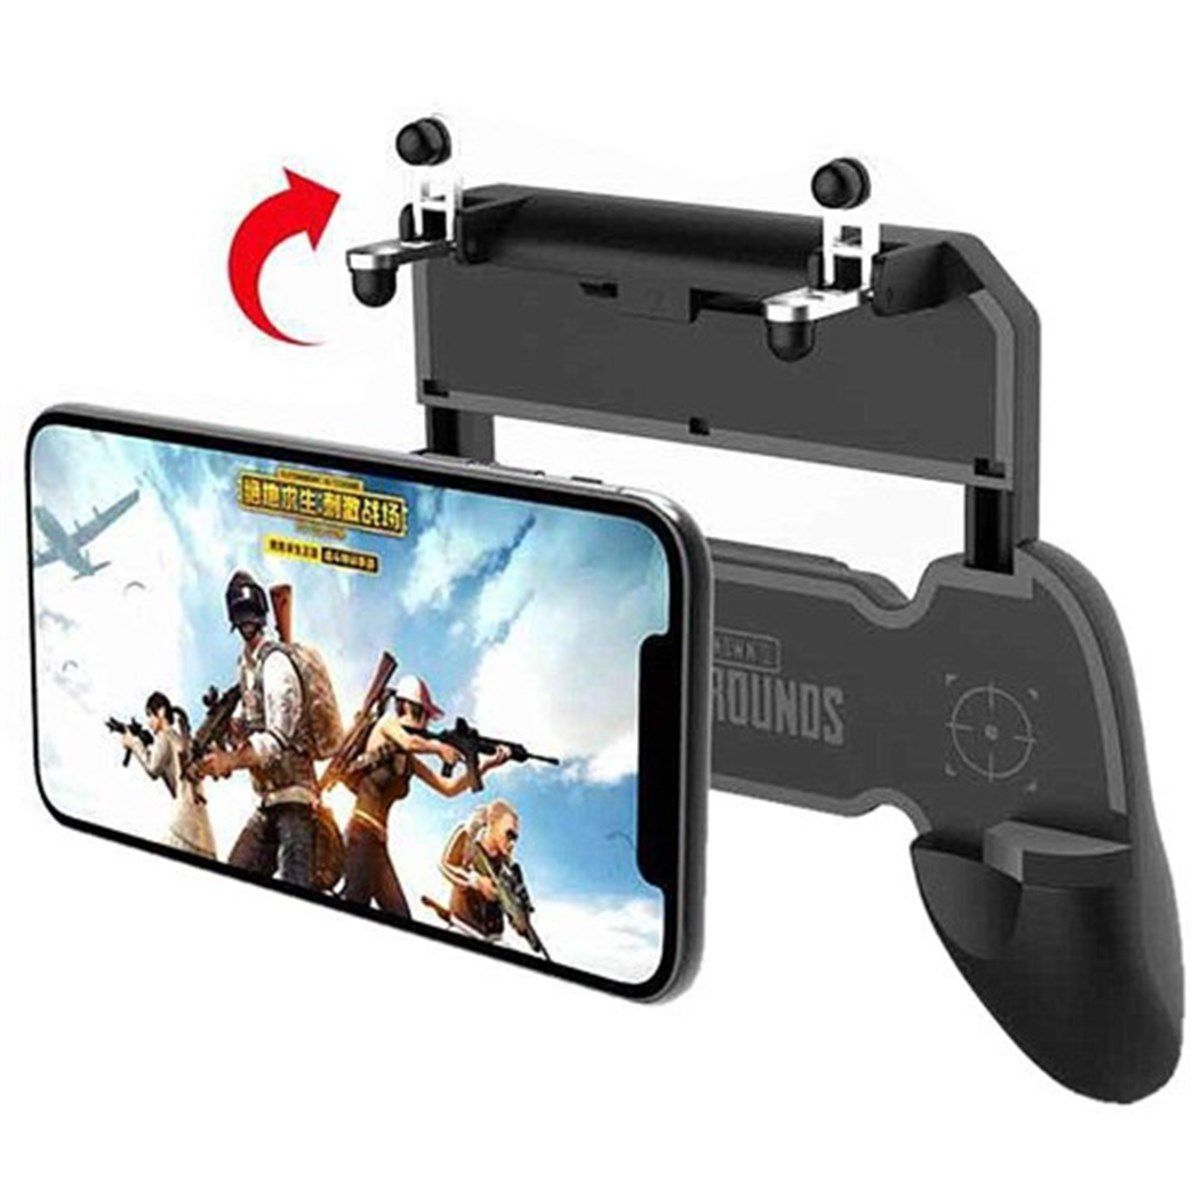 Kit 2x Suporte + Gatilho All In One Gamepad Game Handle P/ Celular W10